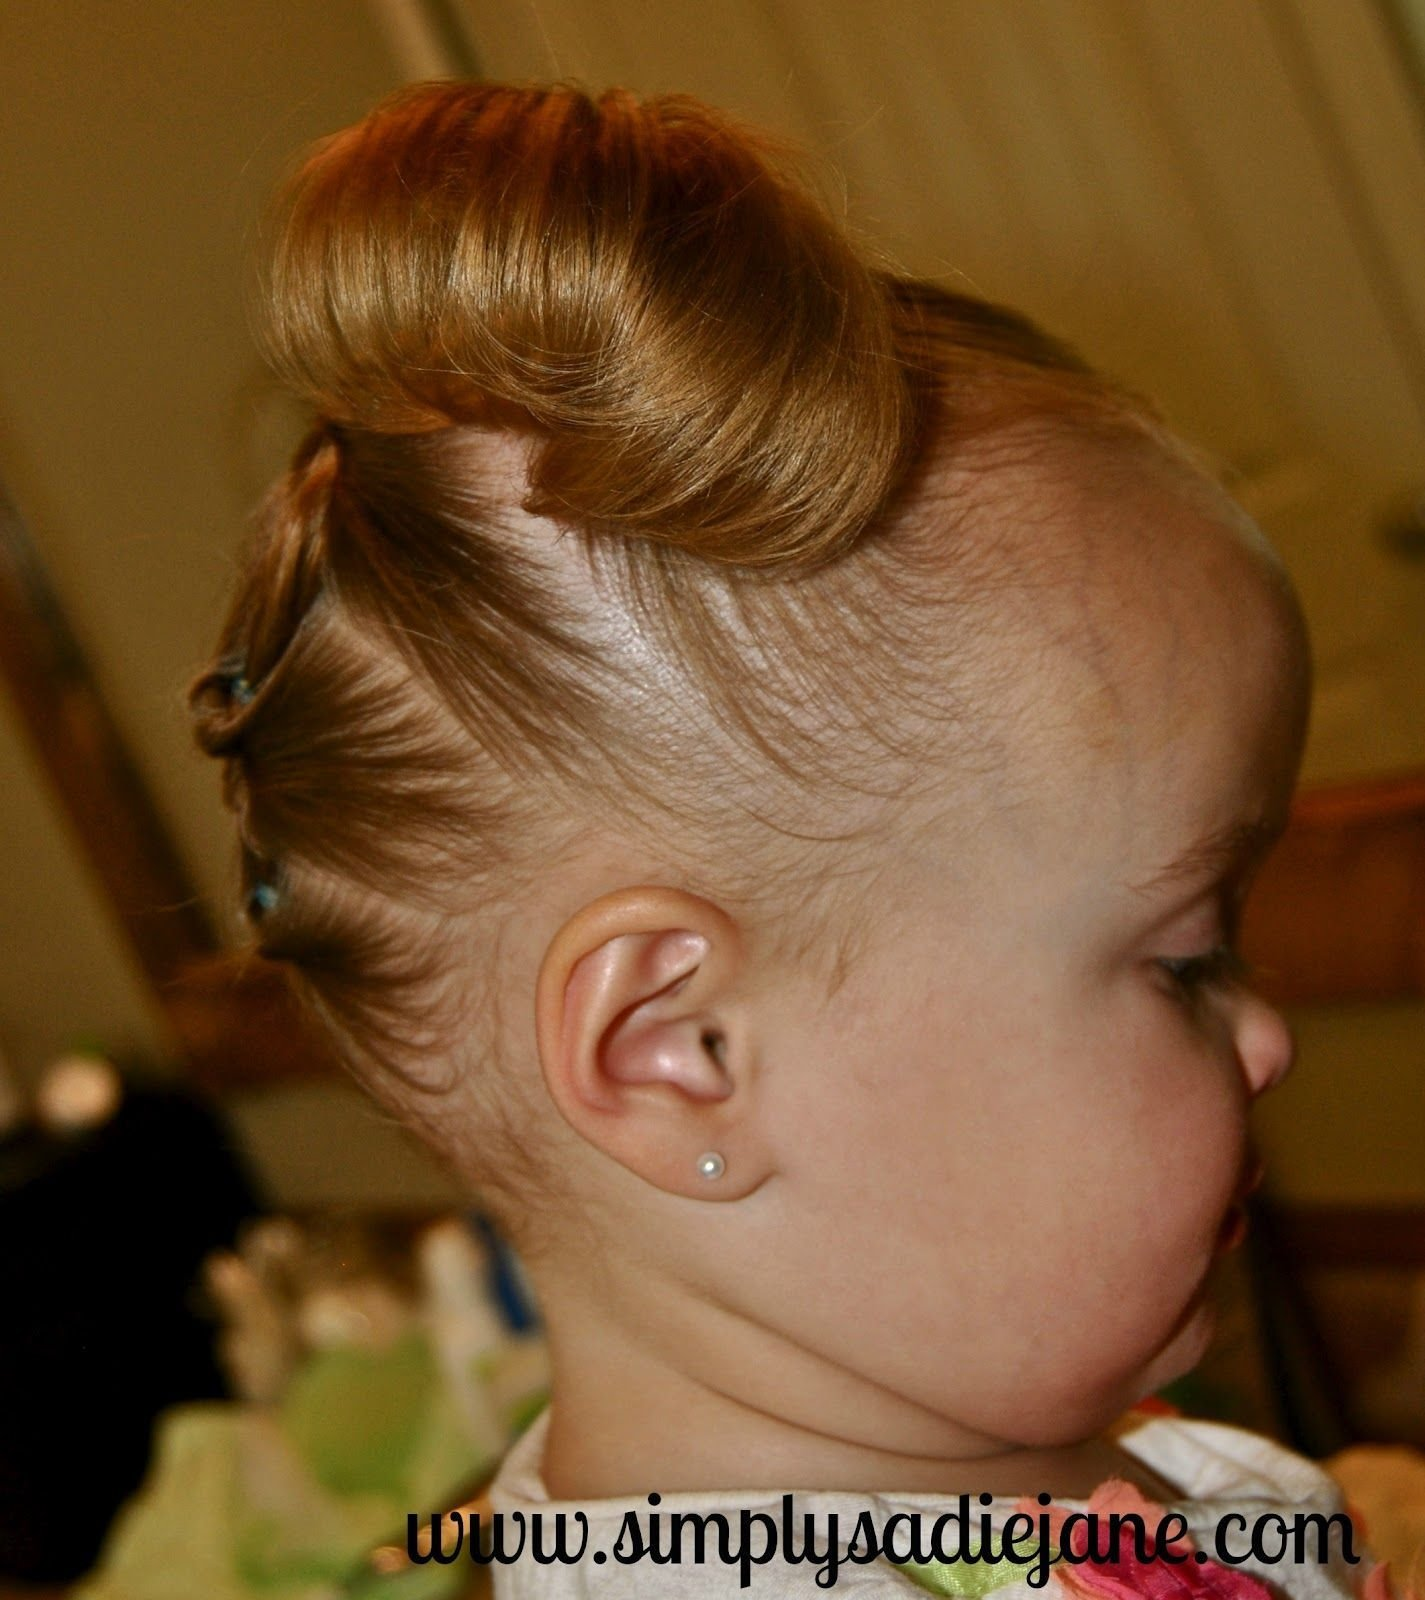 The Best 1 Year Old Baby Girl Hairstyles Hairstyle For Women Man Pictures Original 1024 x 768